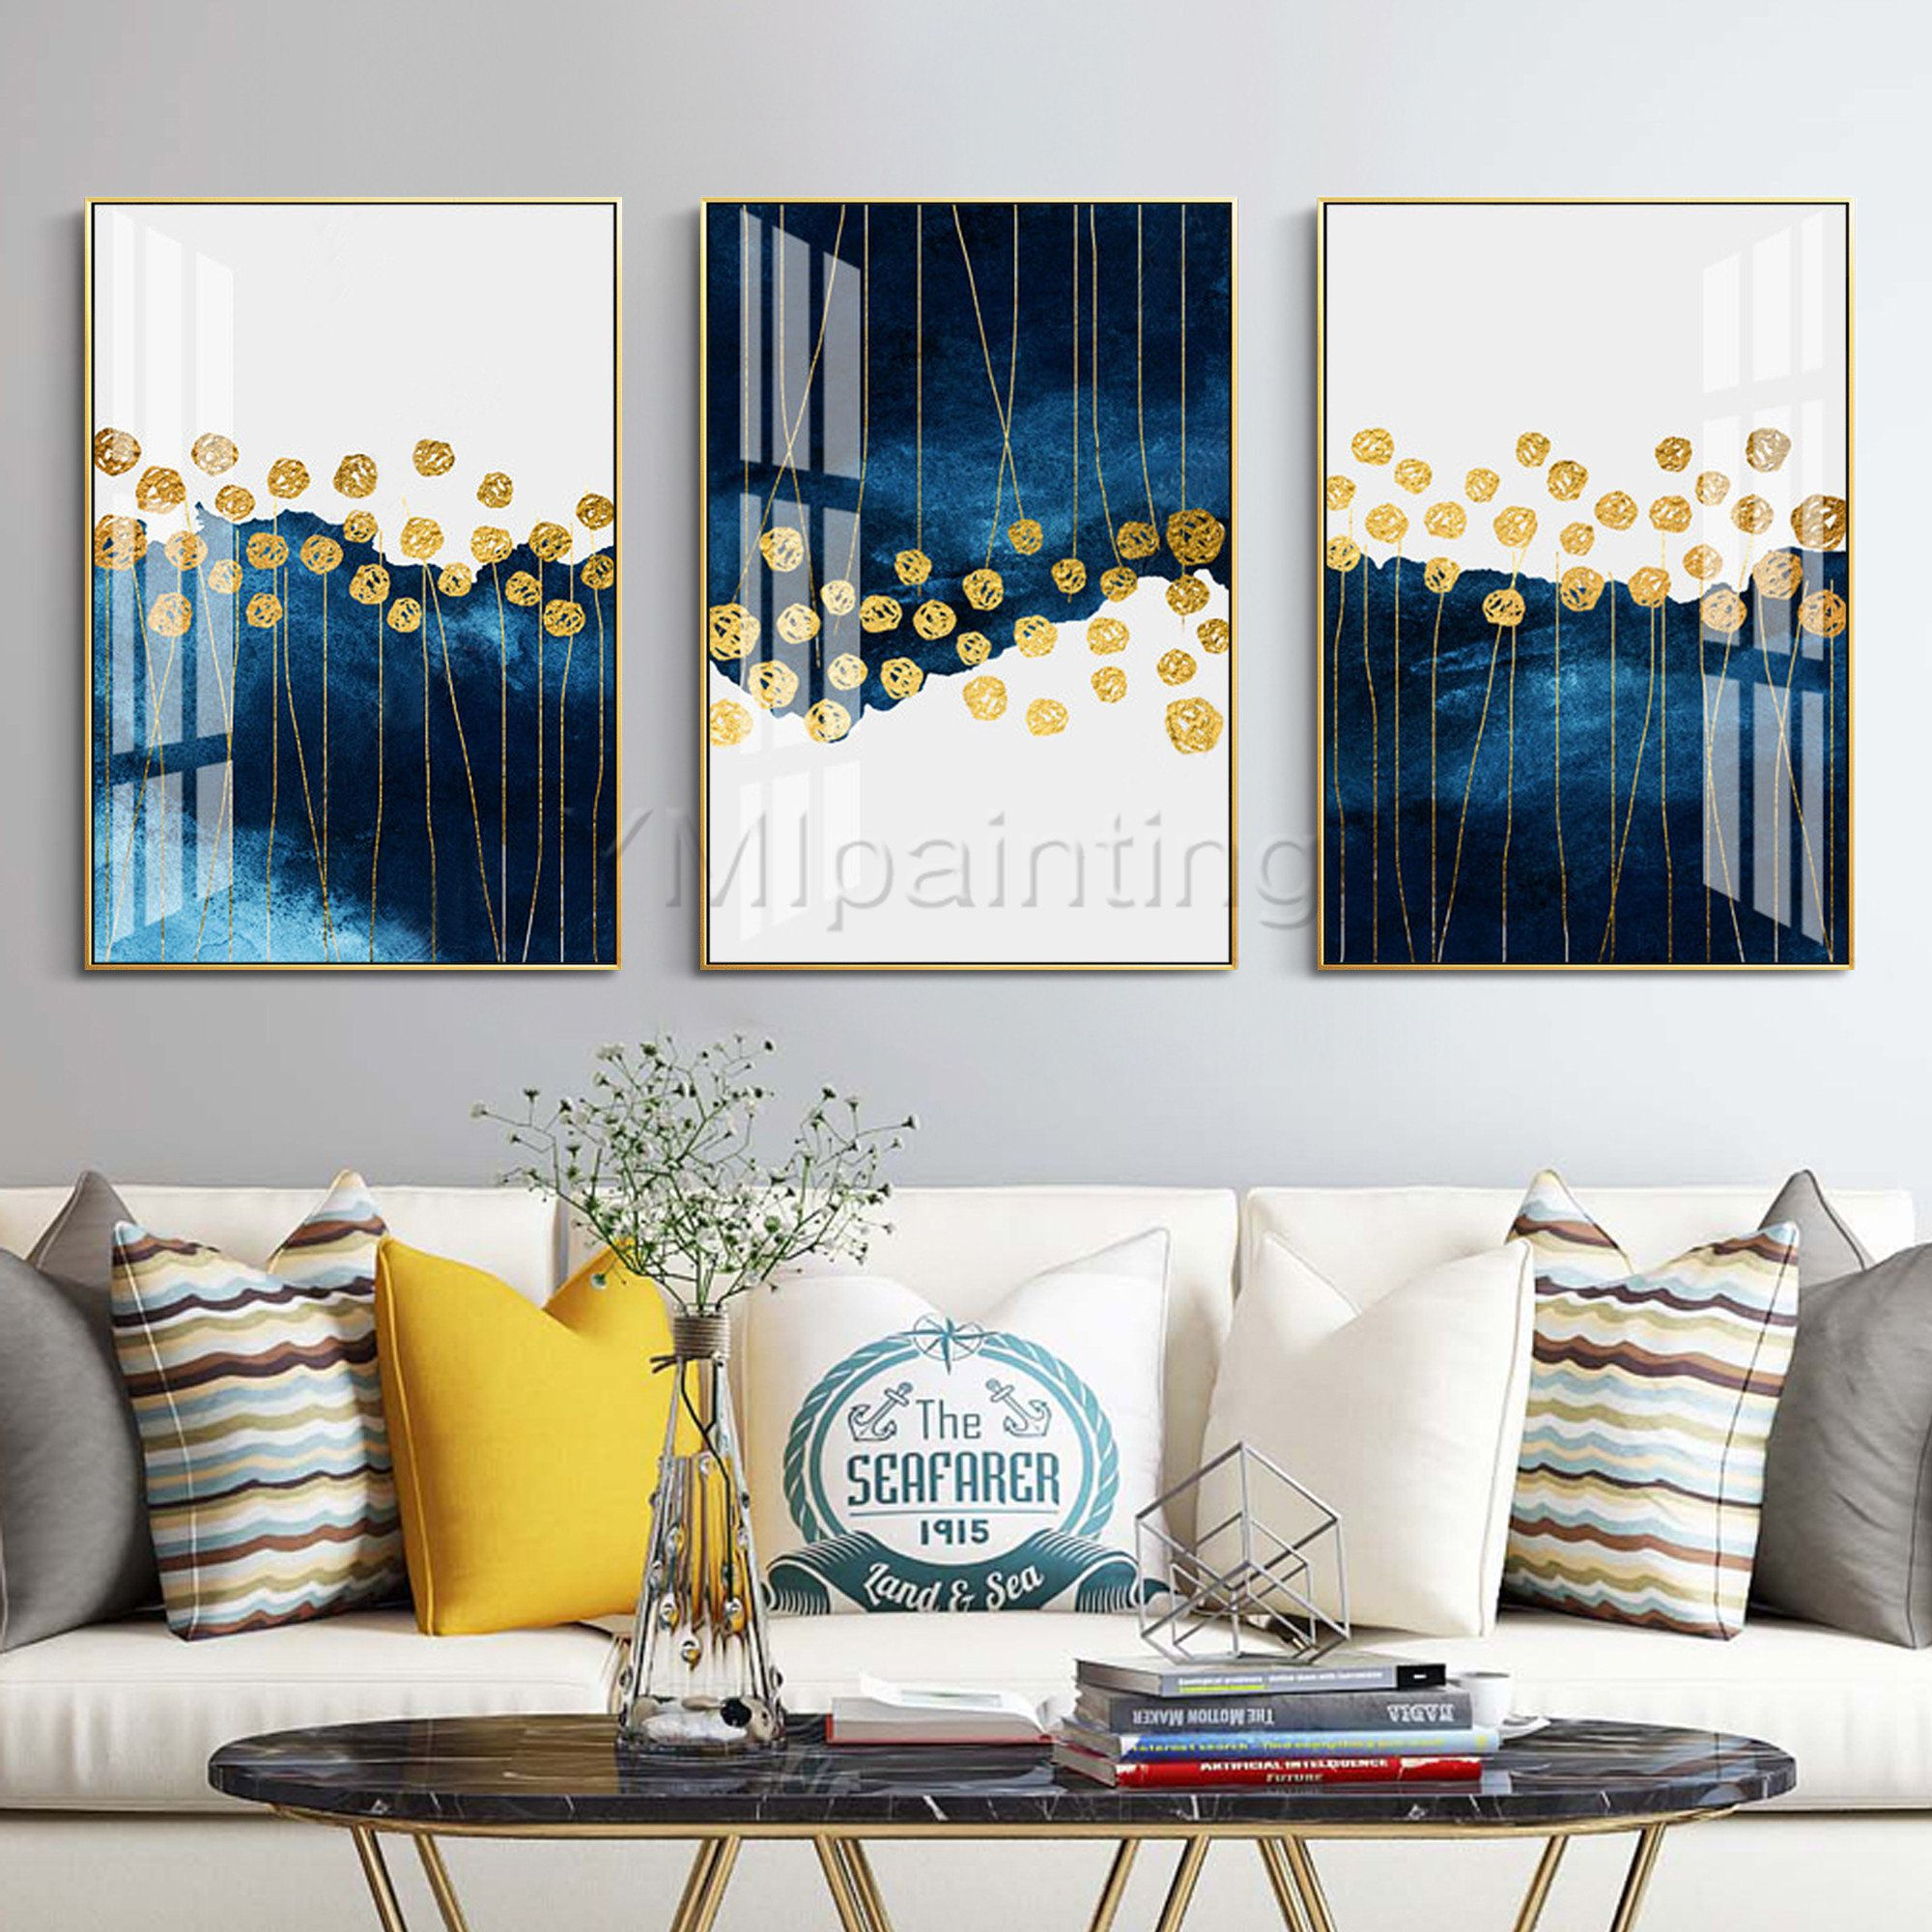 Abstract Floral Painting Framed Painting Navy Blue Gold Art Etsy Abstract Floral Paintings Painting Frames Cactus Wall Art